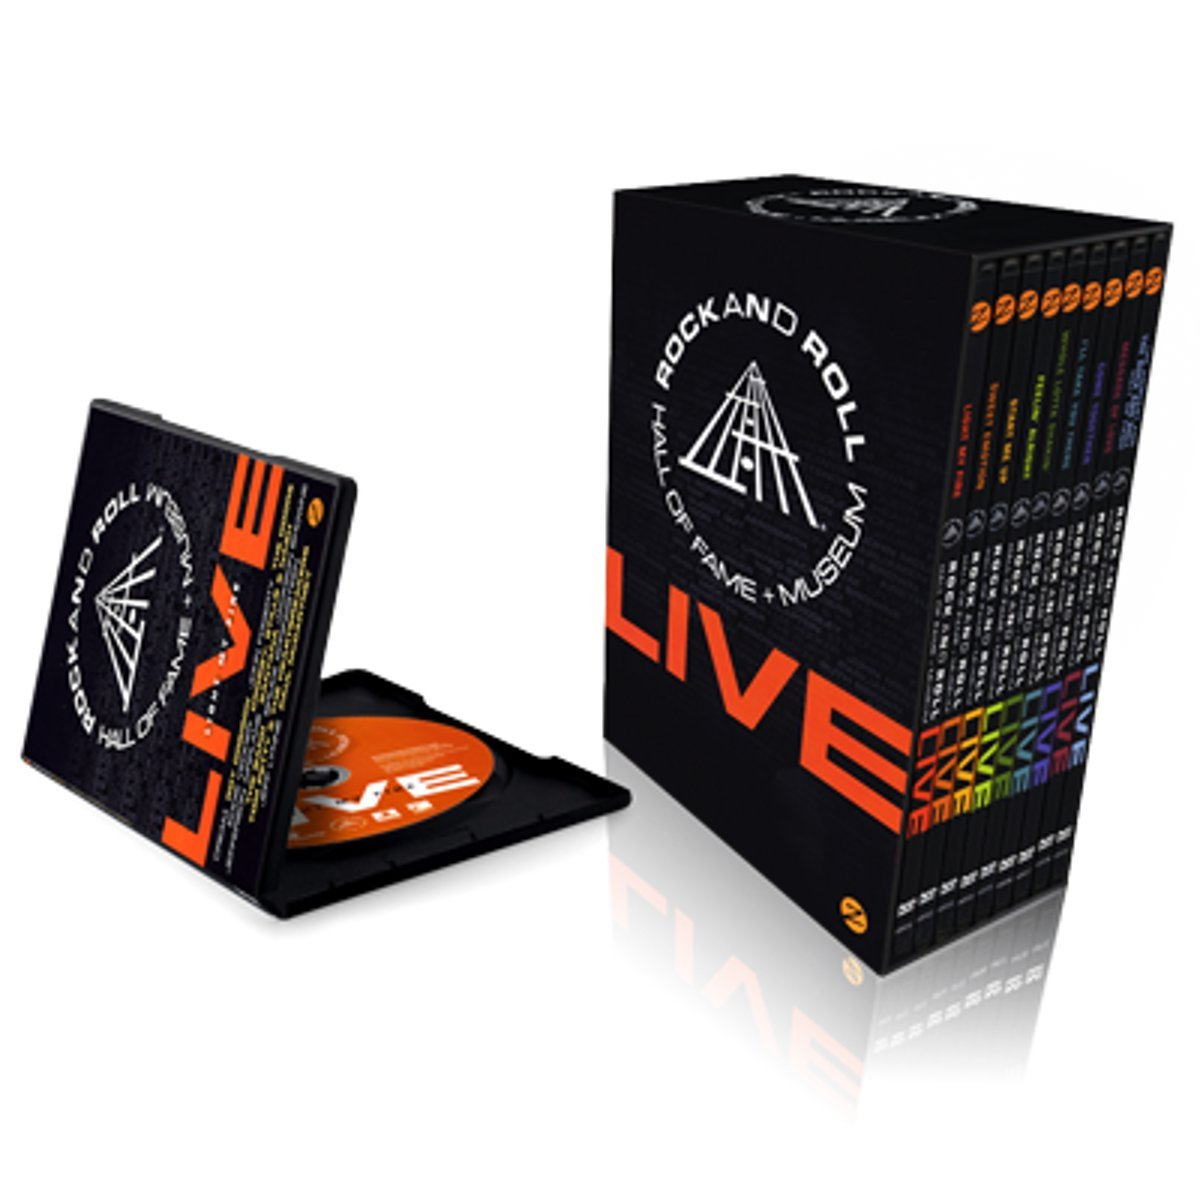 Rock and Roll Hall of Fame LIVE 9 DVD Box Set PAL - Region 2 ...